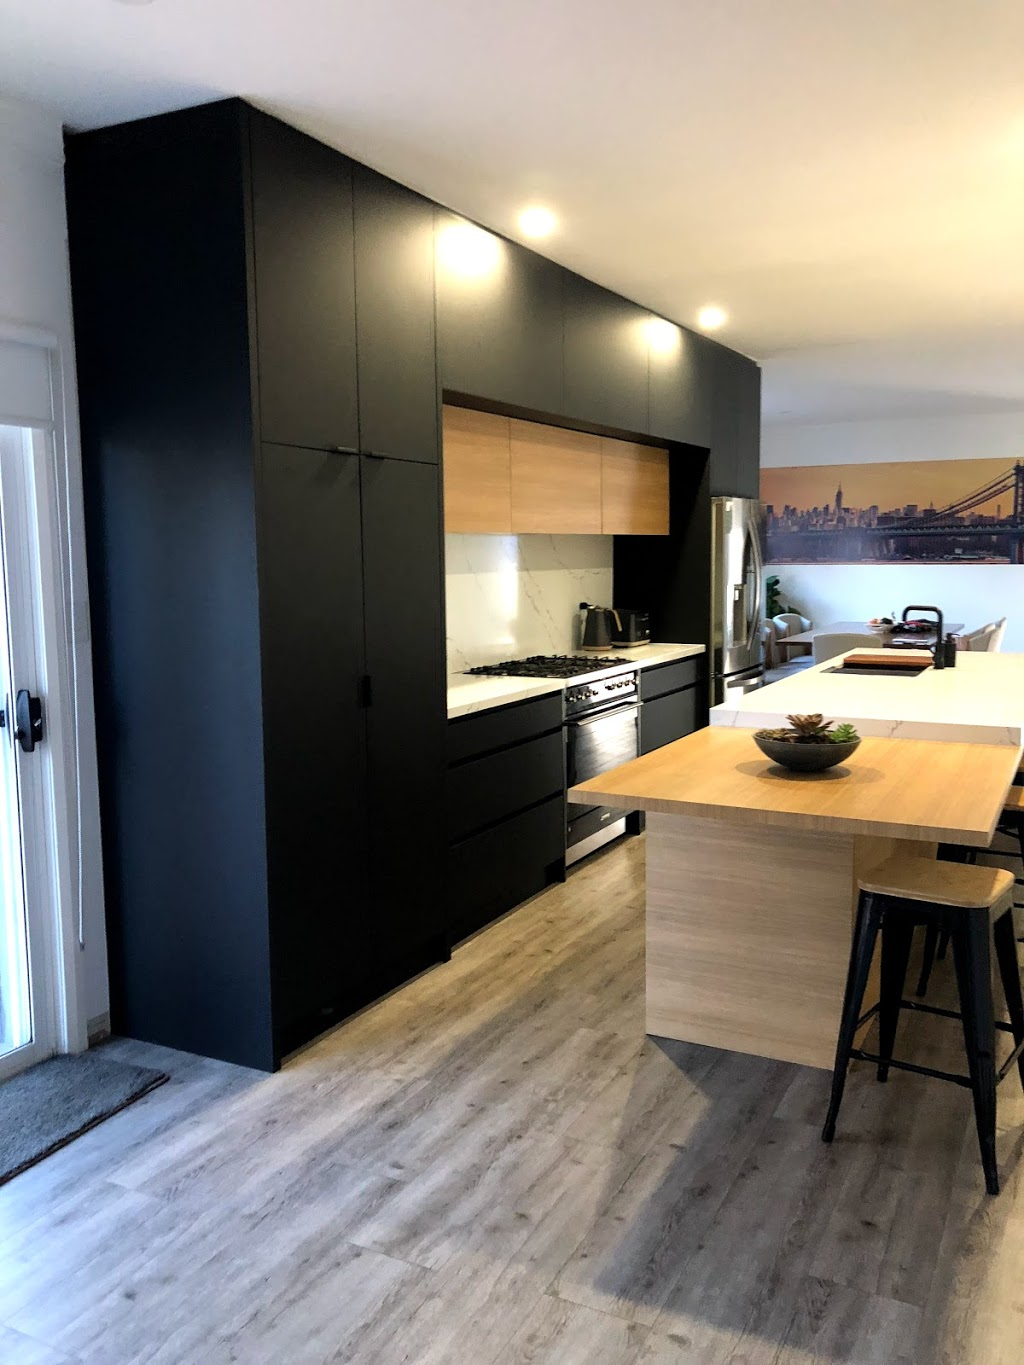 MLT Kitchens & Joinery | furniture store | 103 Princess Highway Fairy Meadow, Wollongong NSW 2519, Australia | 0242283344 OR +61 2 4228 3344